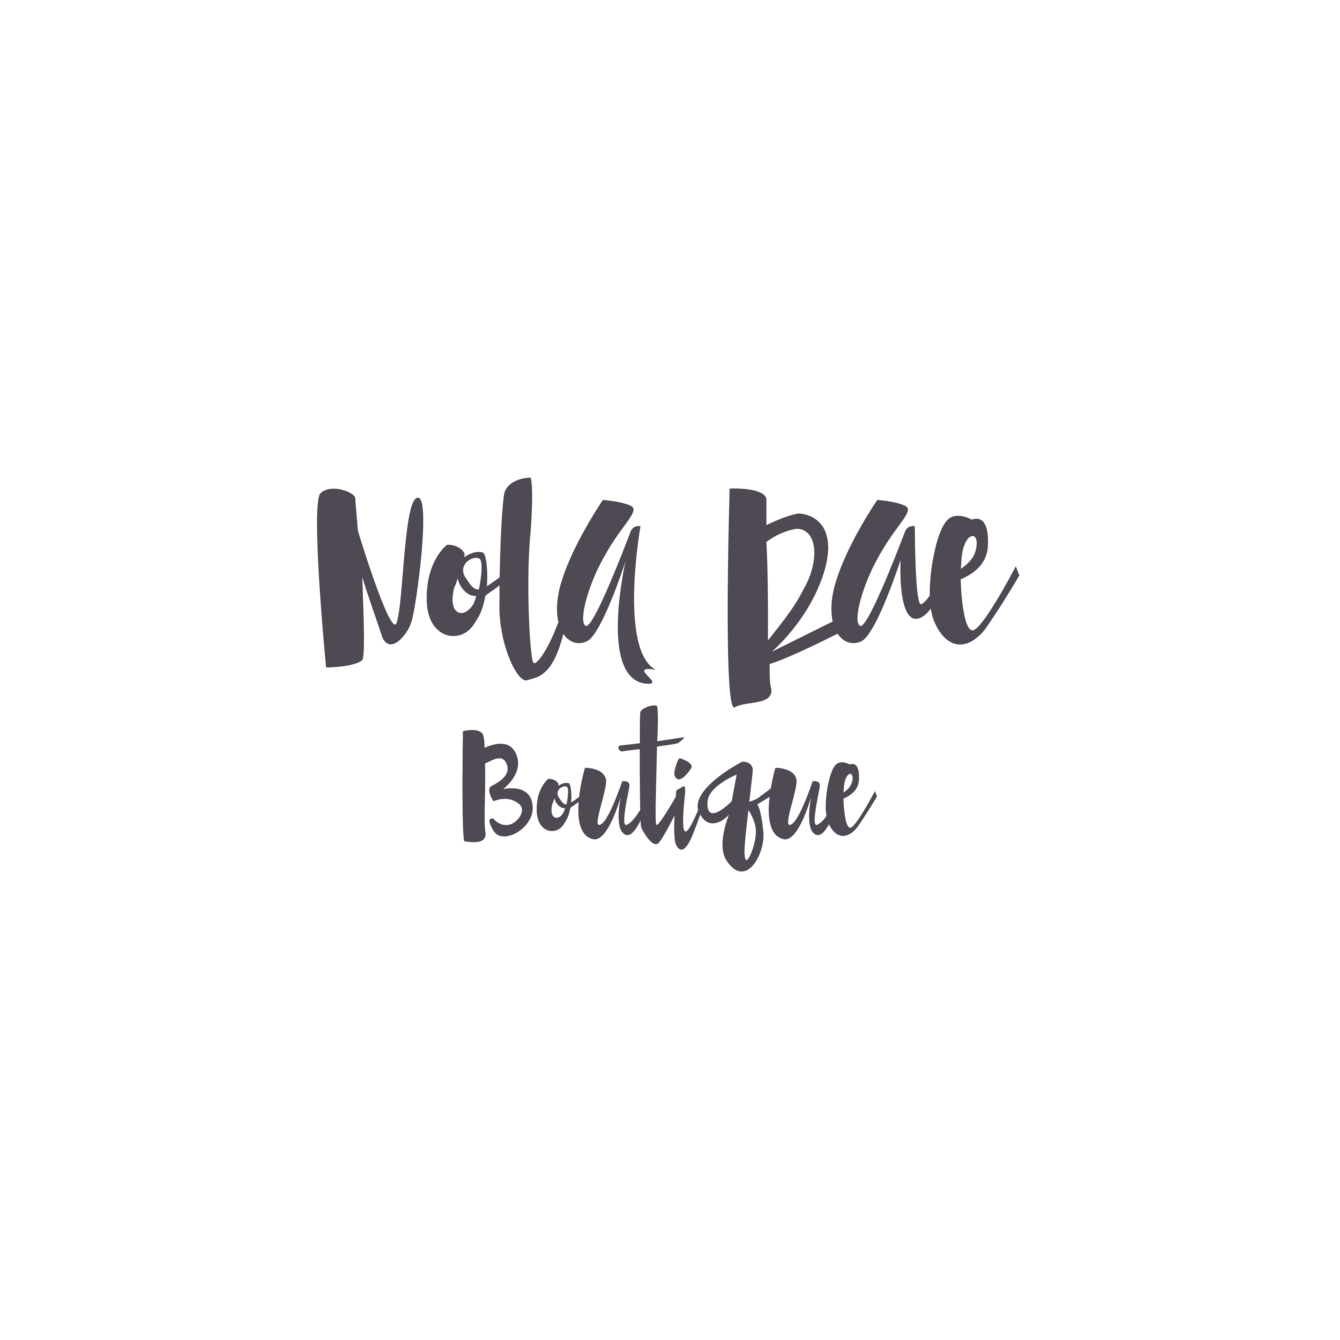 Nola Rae Boutique